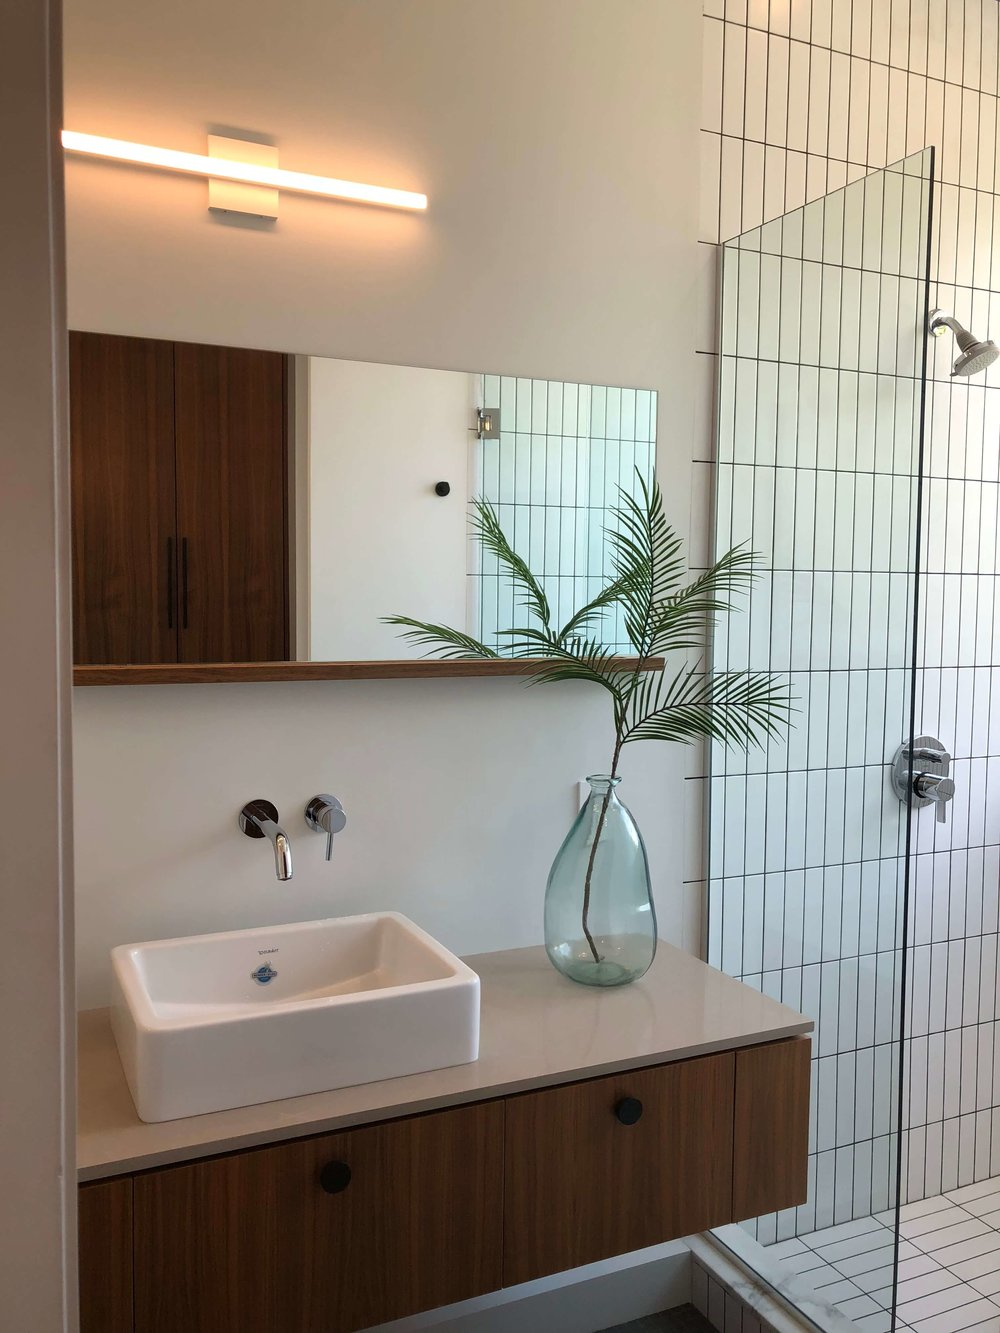 Modern bathroom with floating vanity, wall mount faucet, chunky vessel sink and LED vanity light - California home tour